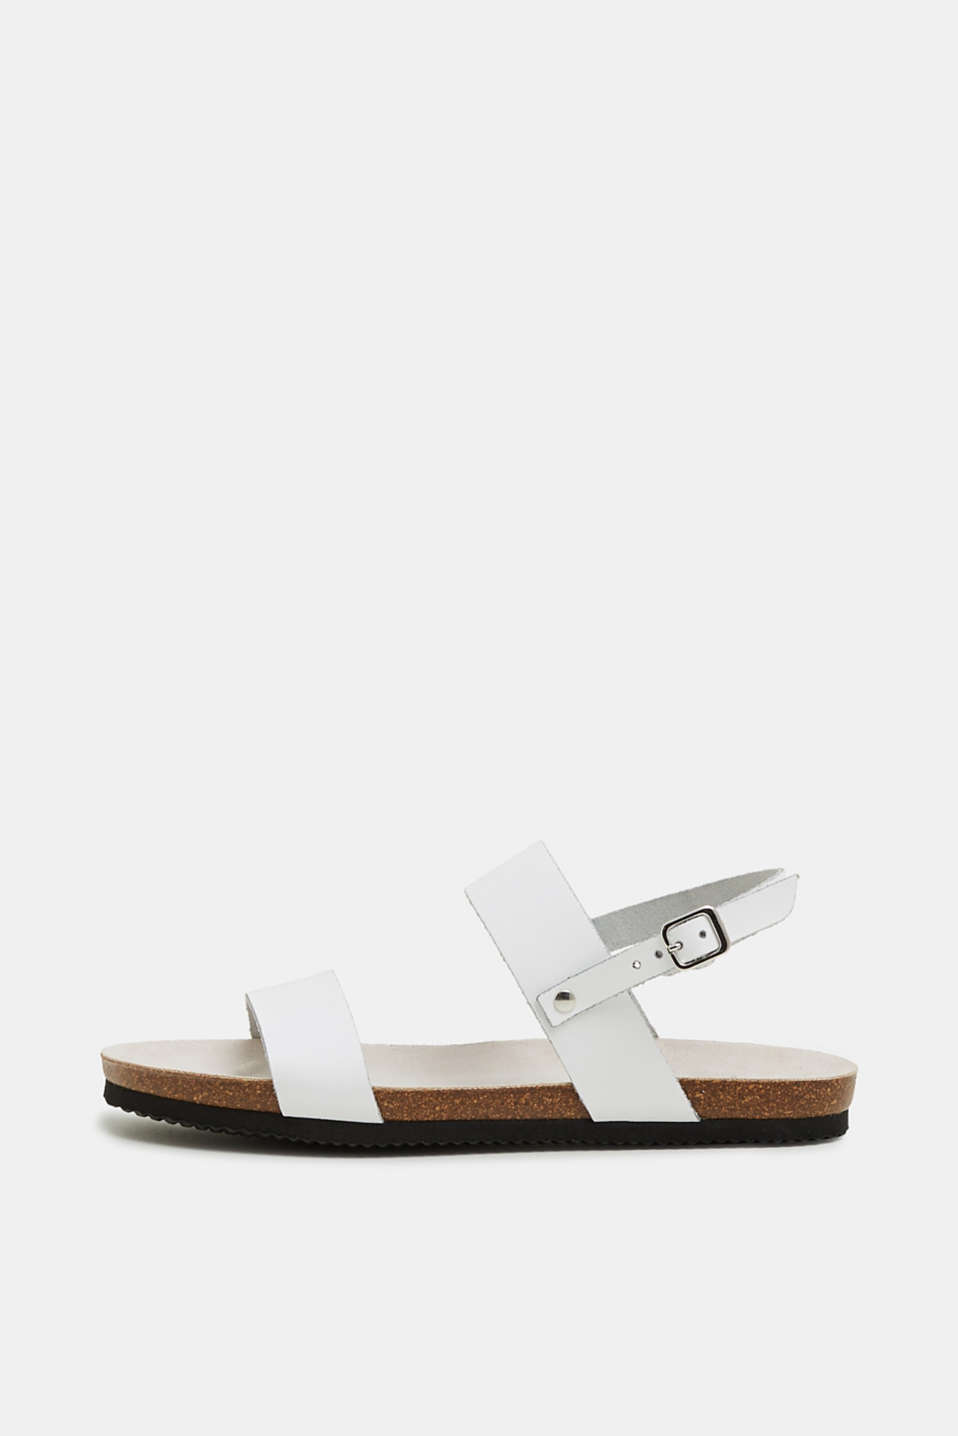 Esprit - Sandals with footbed, made of leather